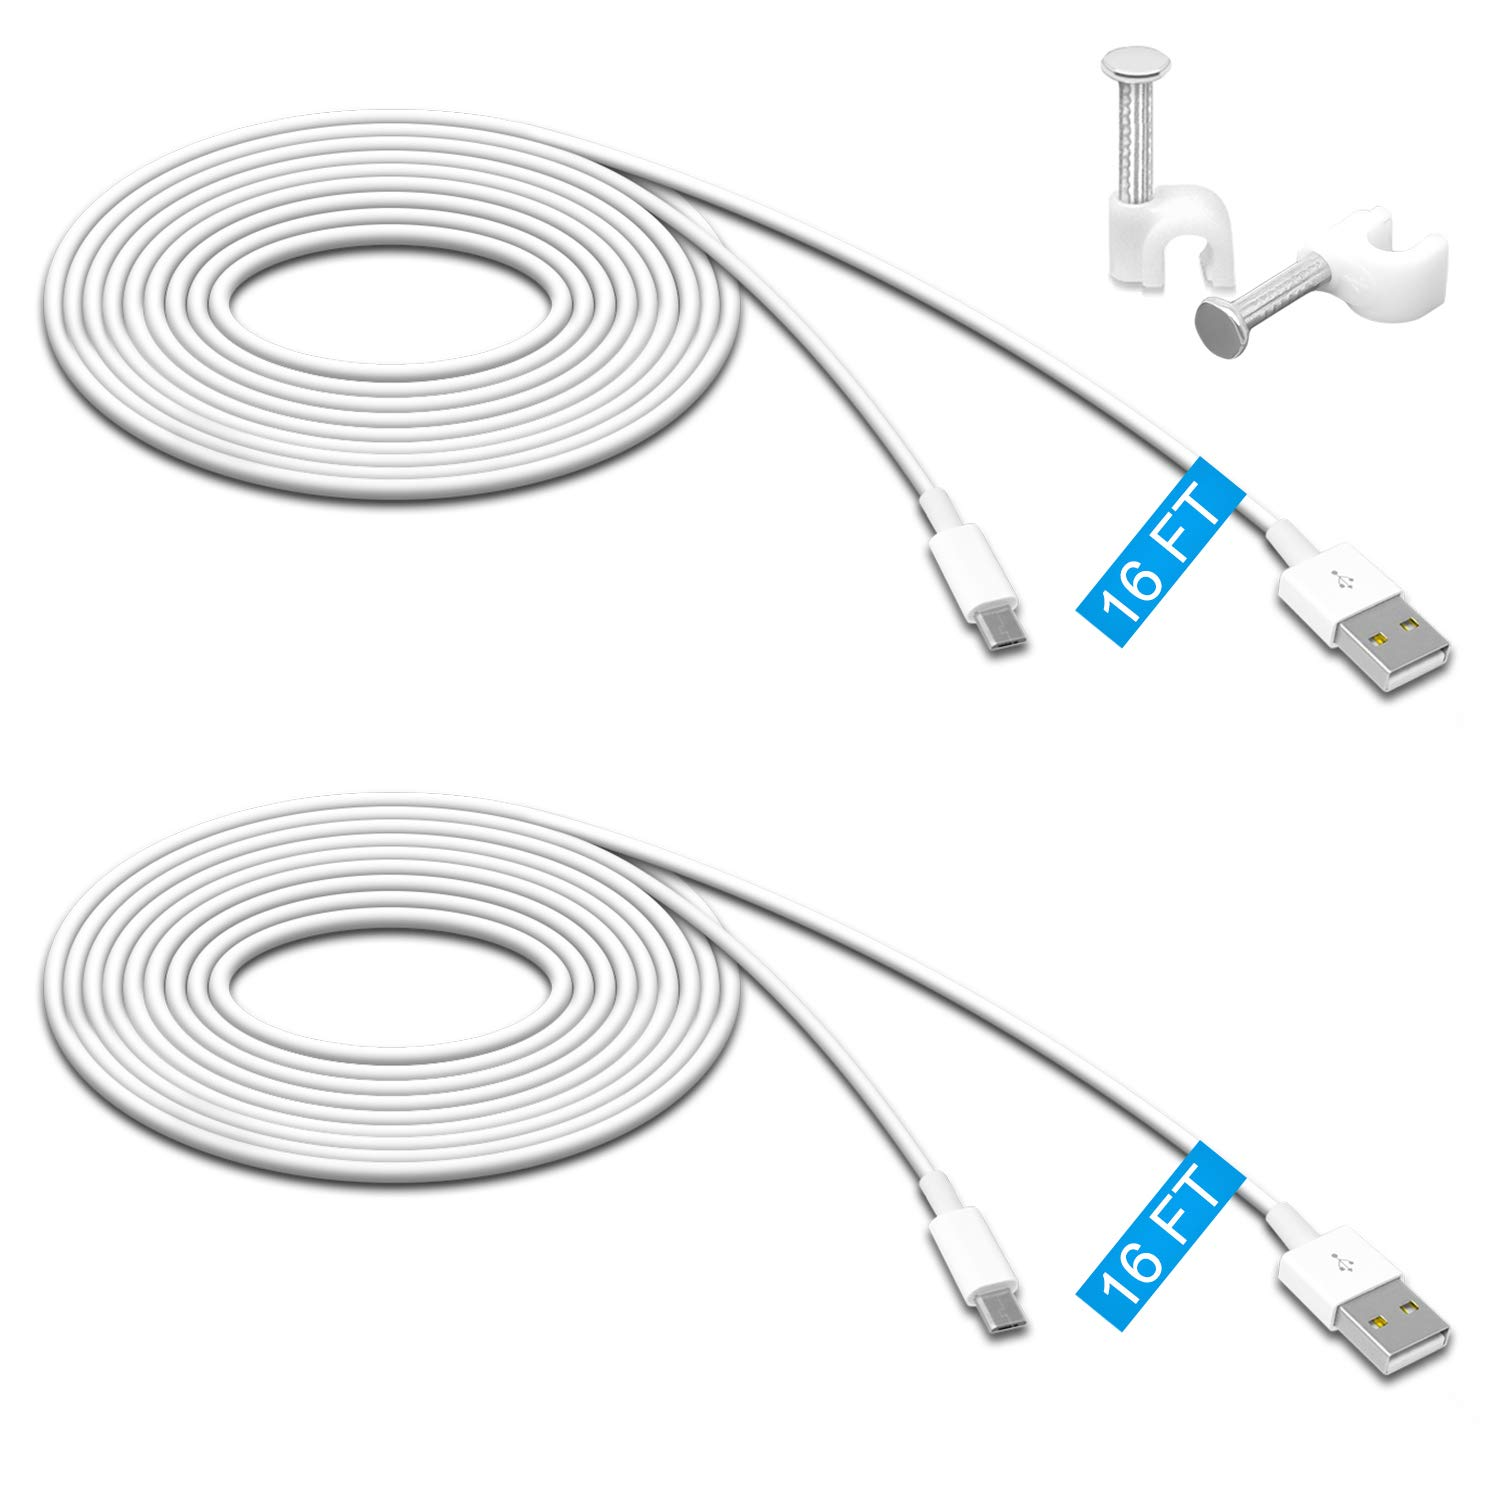 2 Pack 16.4FT Power Extension Cable for Wyze Cam Pan/WyzeCam/Kasa Cam/YI Dome Home Camera/Furbo Dog/Nest Cam/Blink/Oculus Go/Amazon Cloud Camera,USB to Micro USB Durable Charging and Data Sync Cord by MENEEA